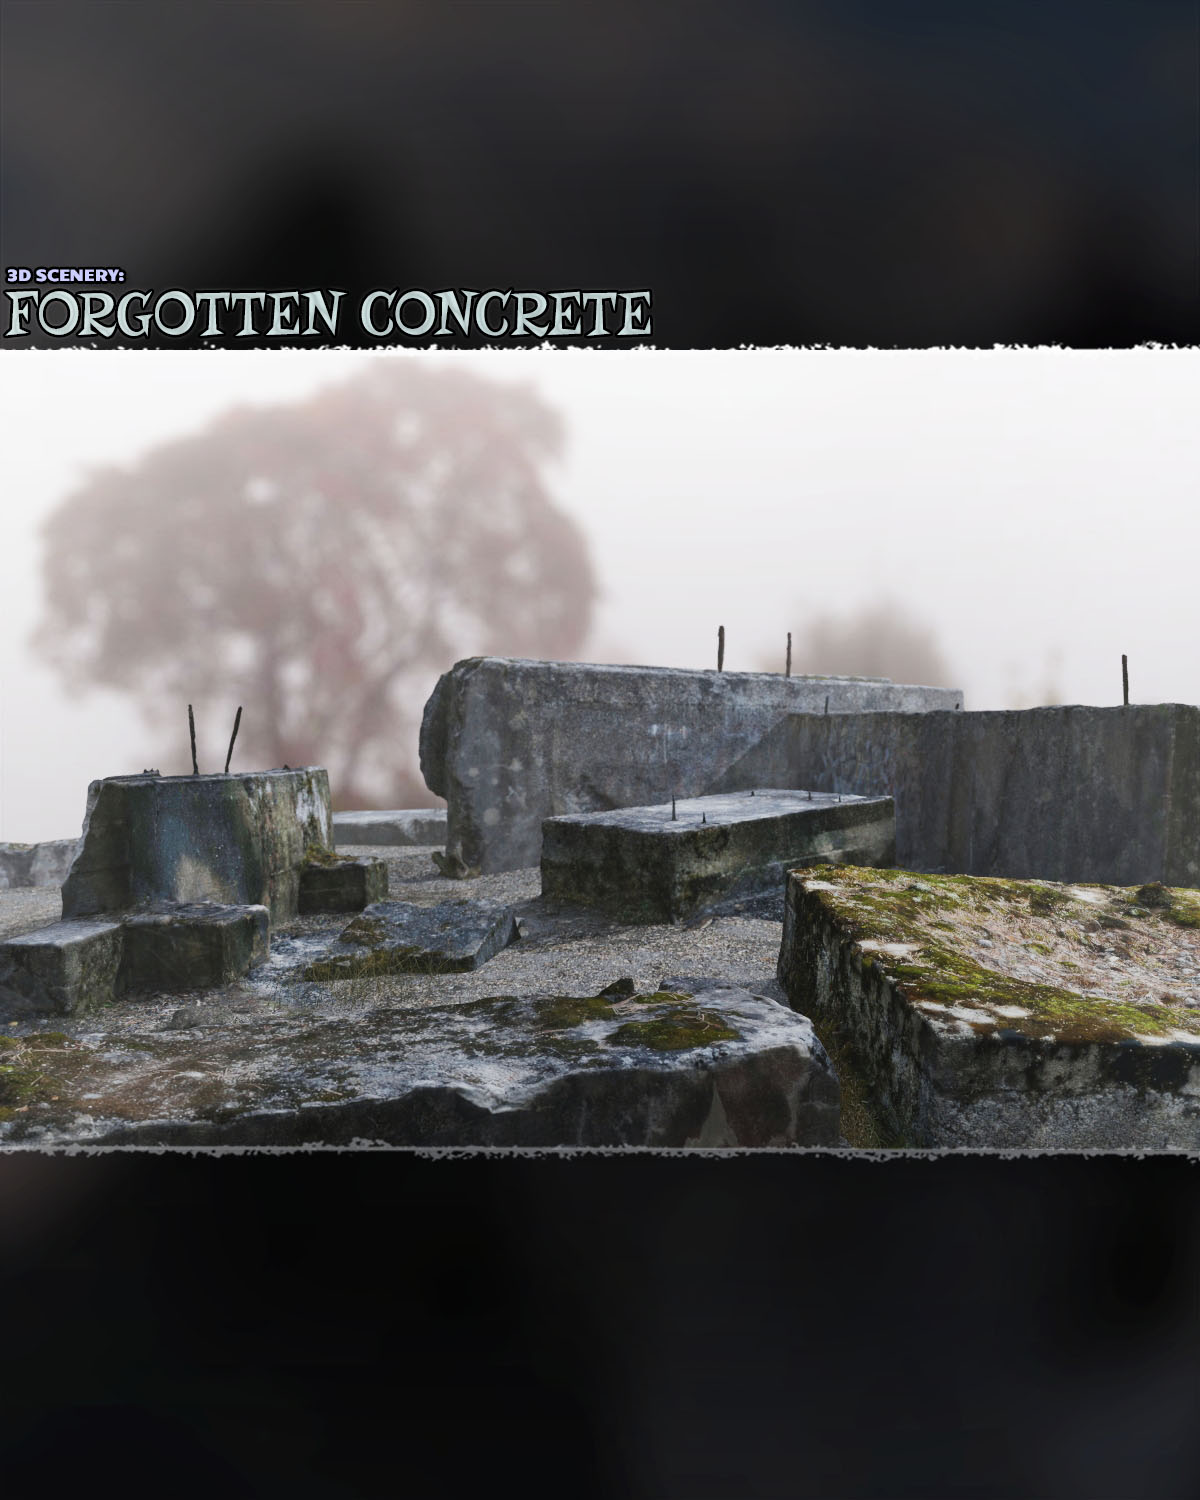 3d Scenery: Forgotten Concrete - Extended License